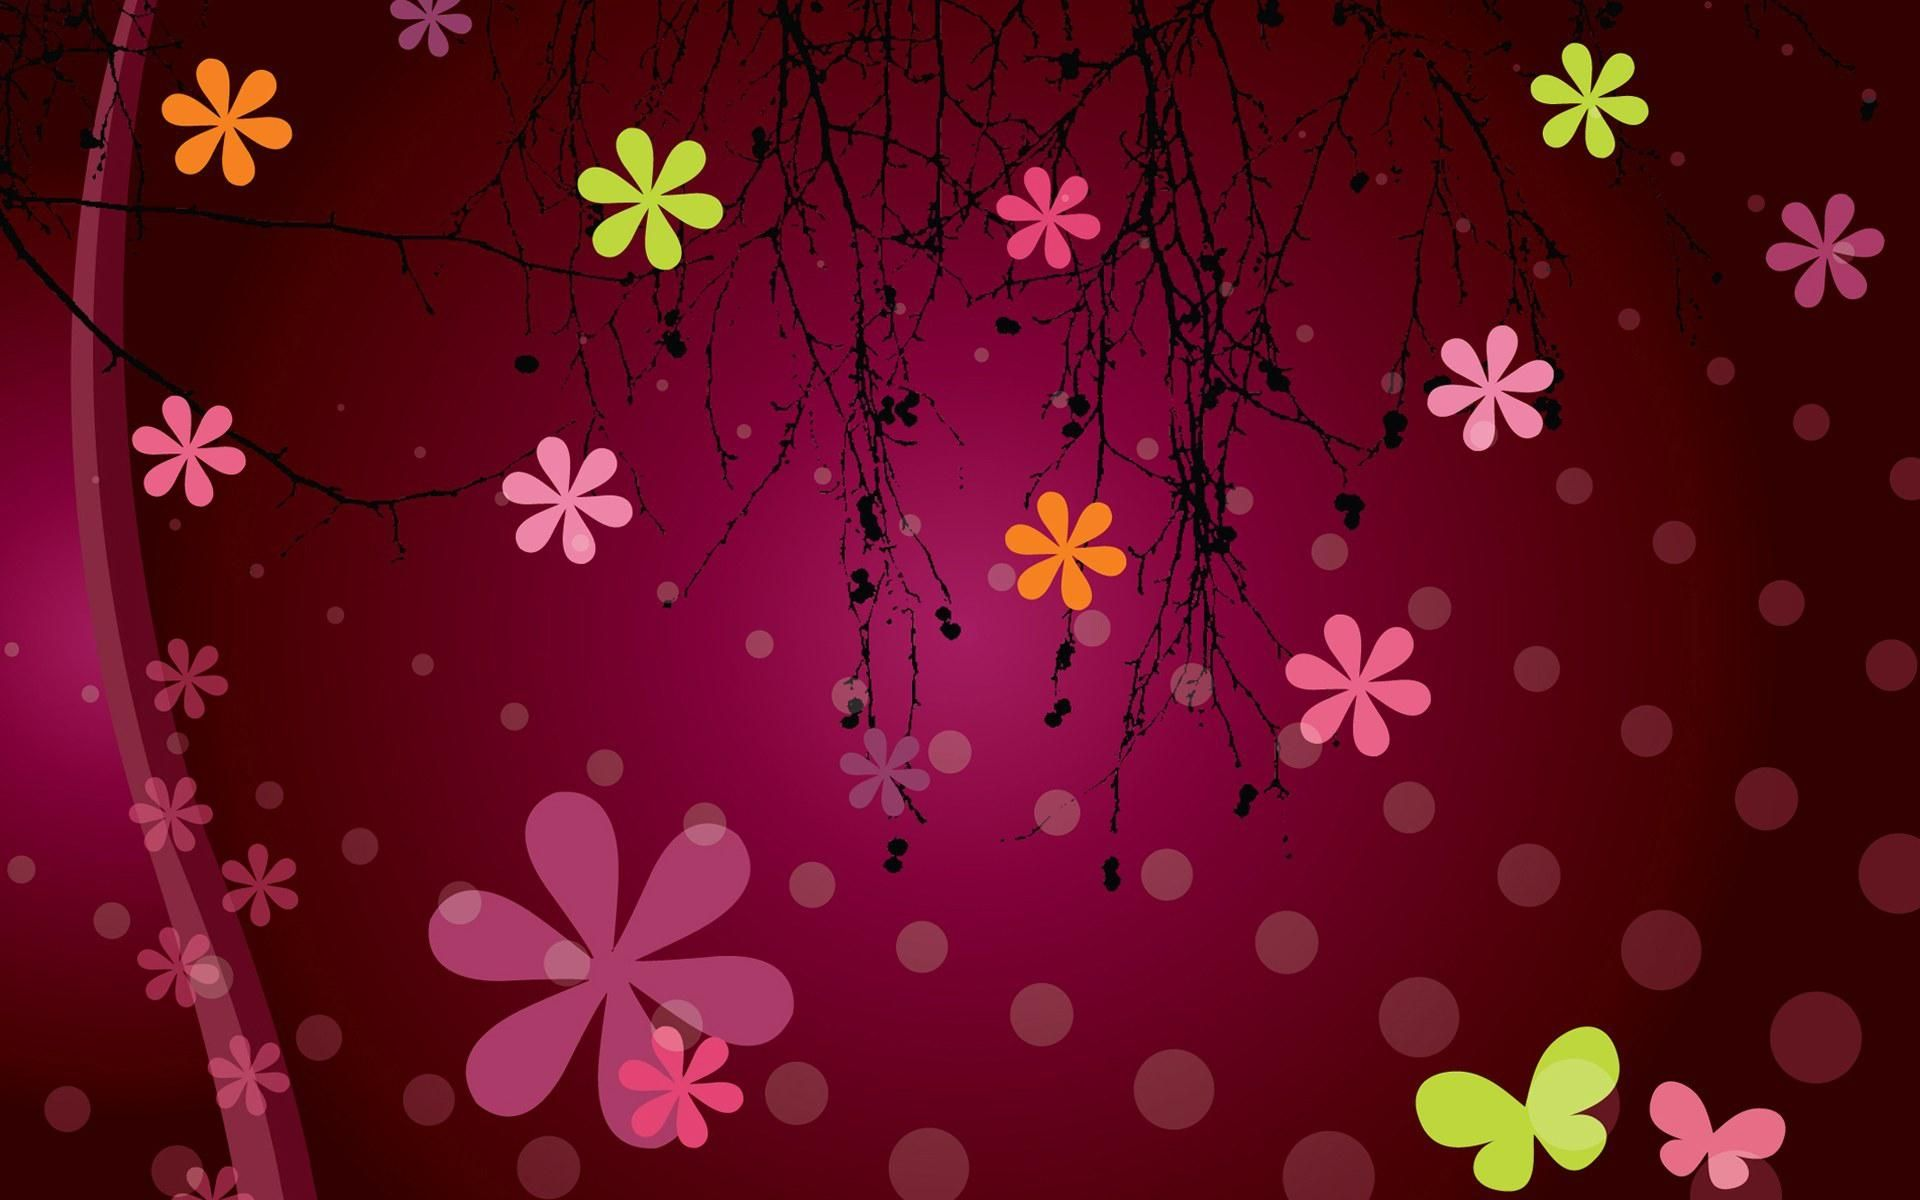 Flower vector designs p wallpapers in jpg format for free download